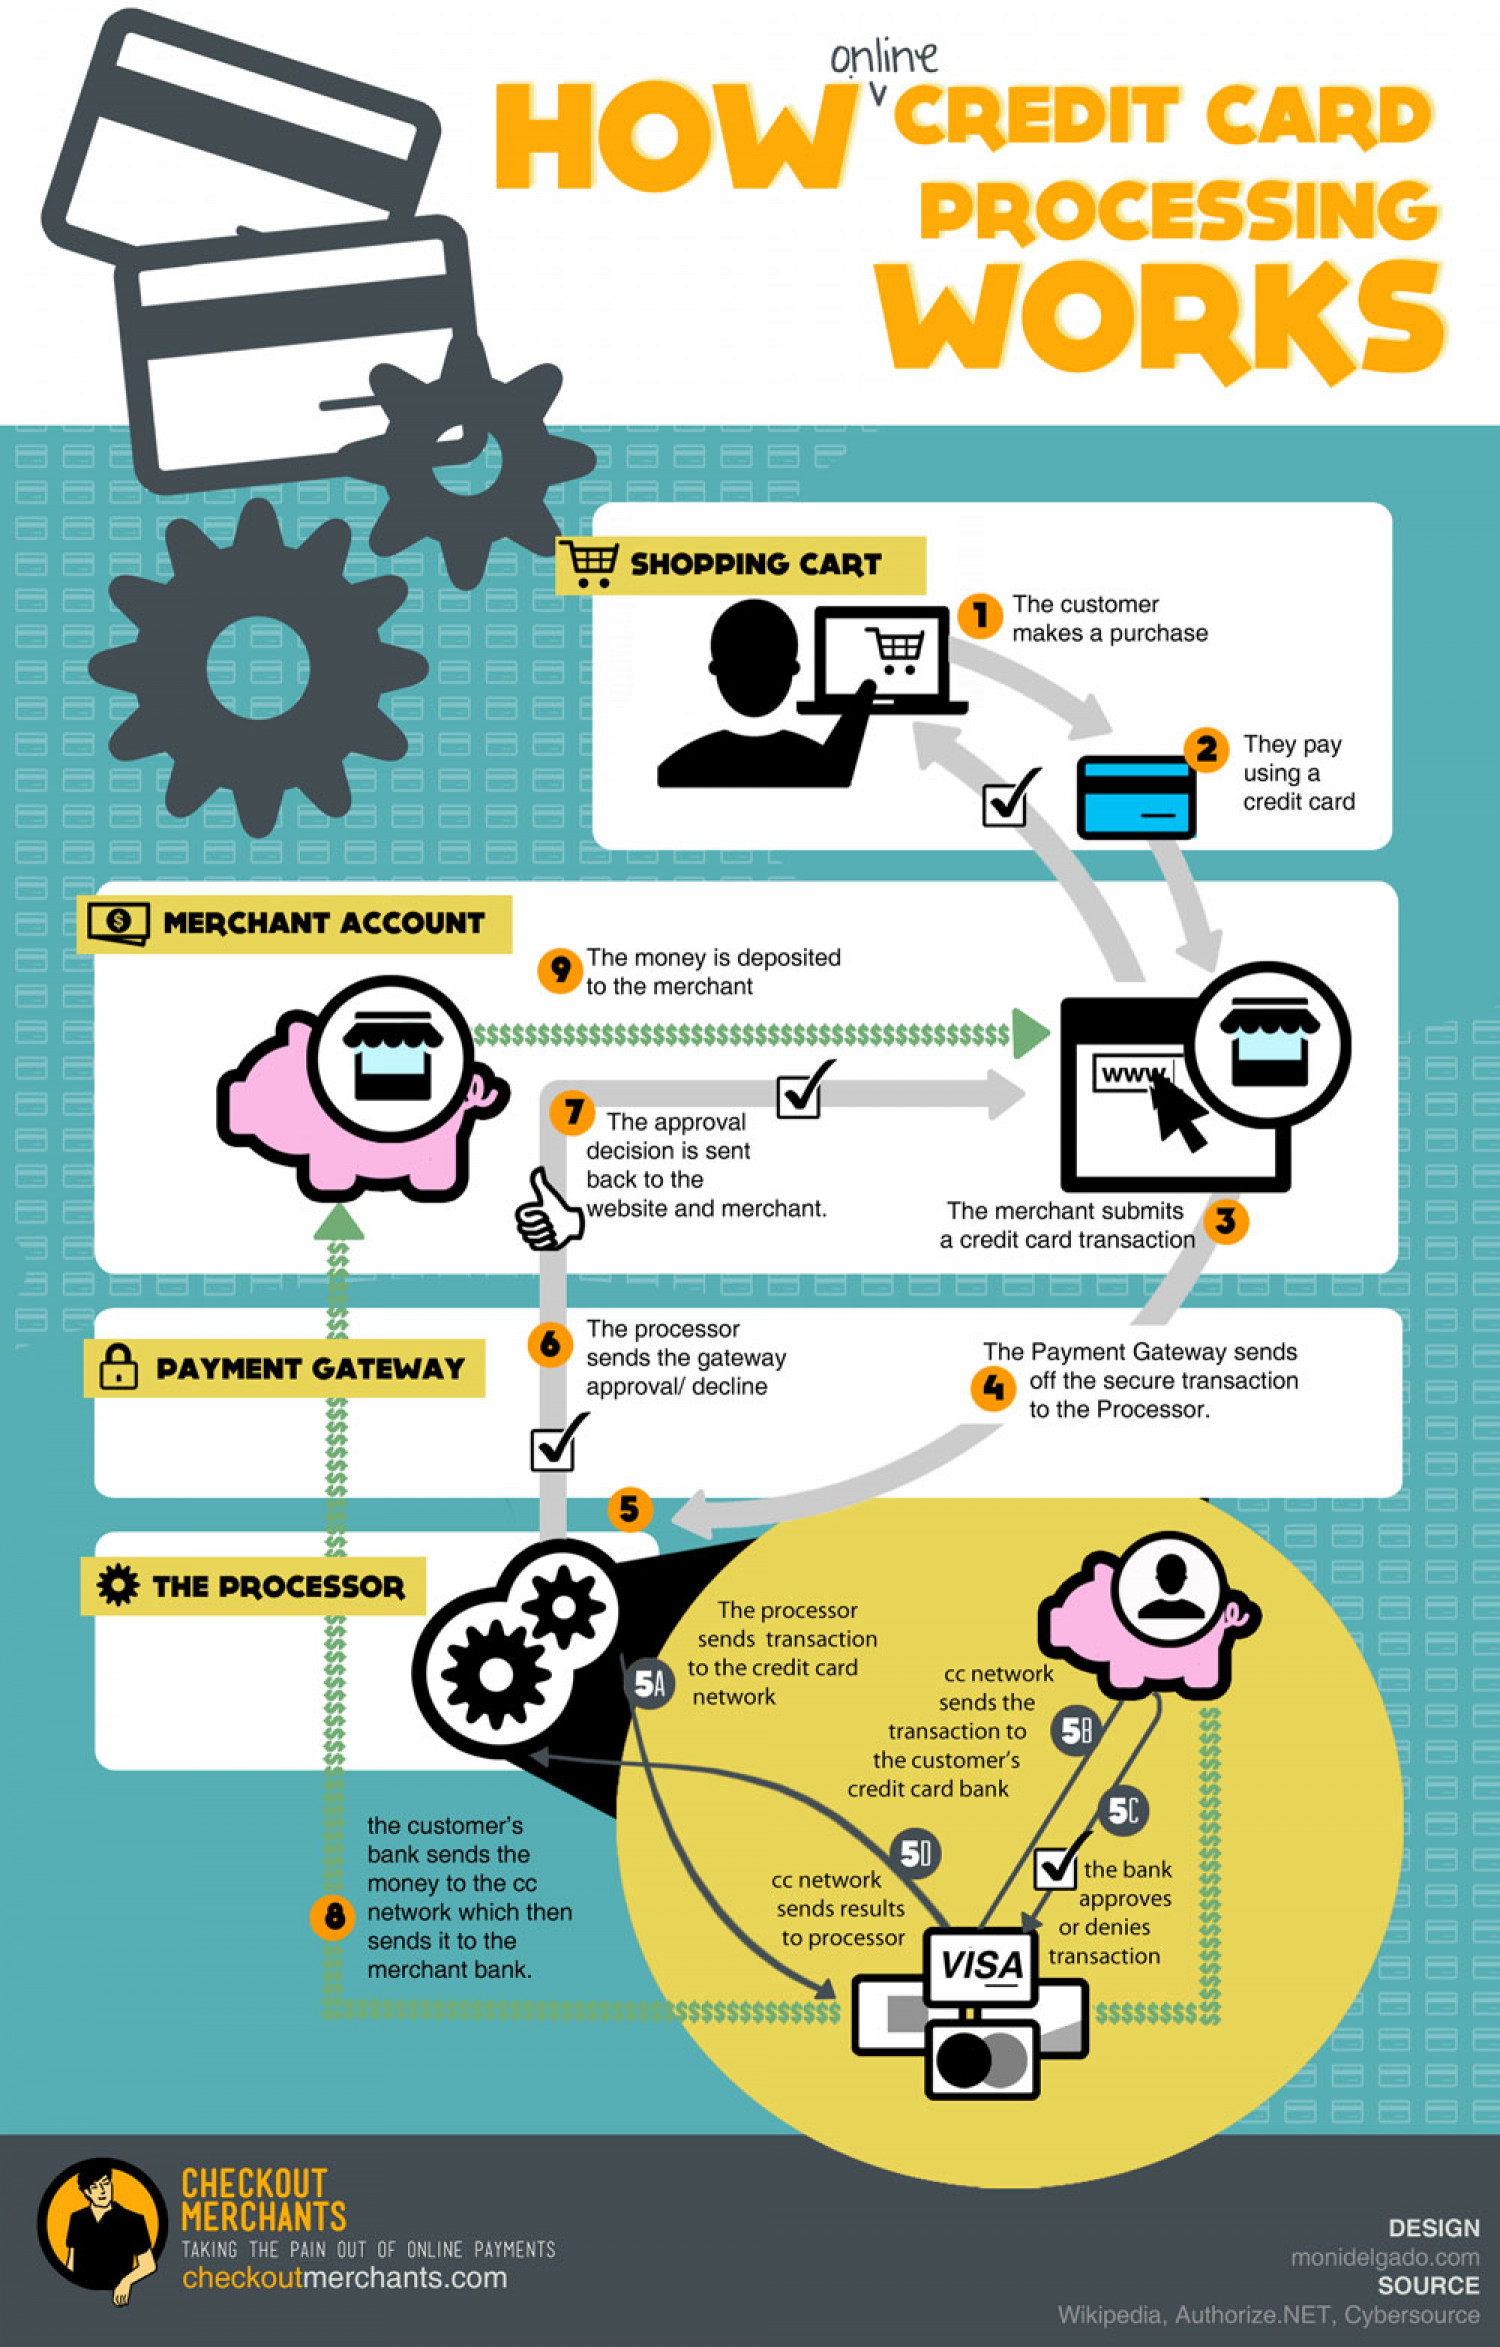 How Online Credit Card Processing Really Works - in 9 steps Infographic